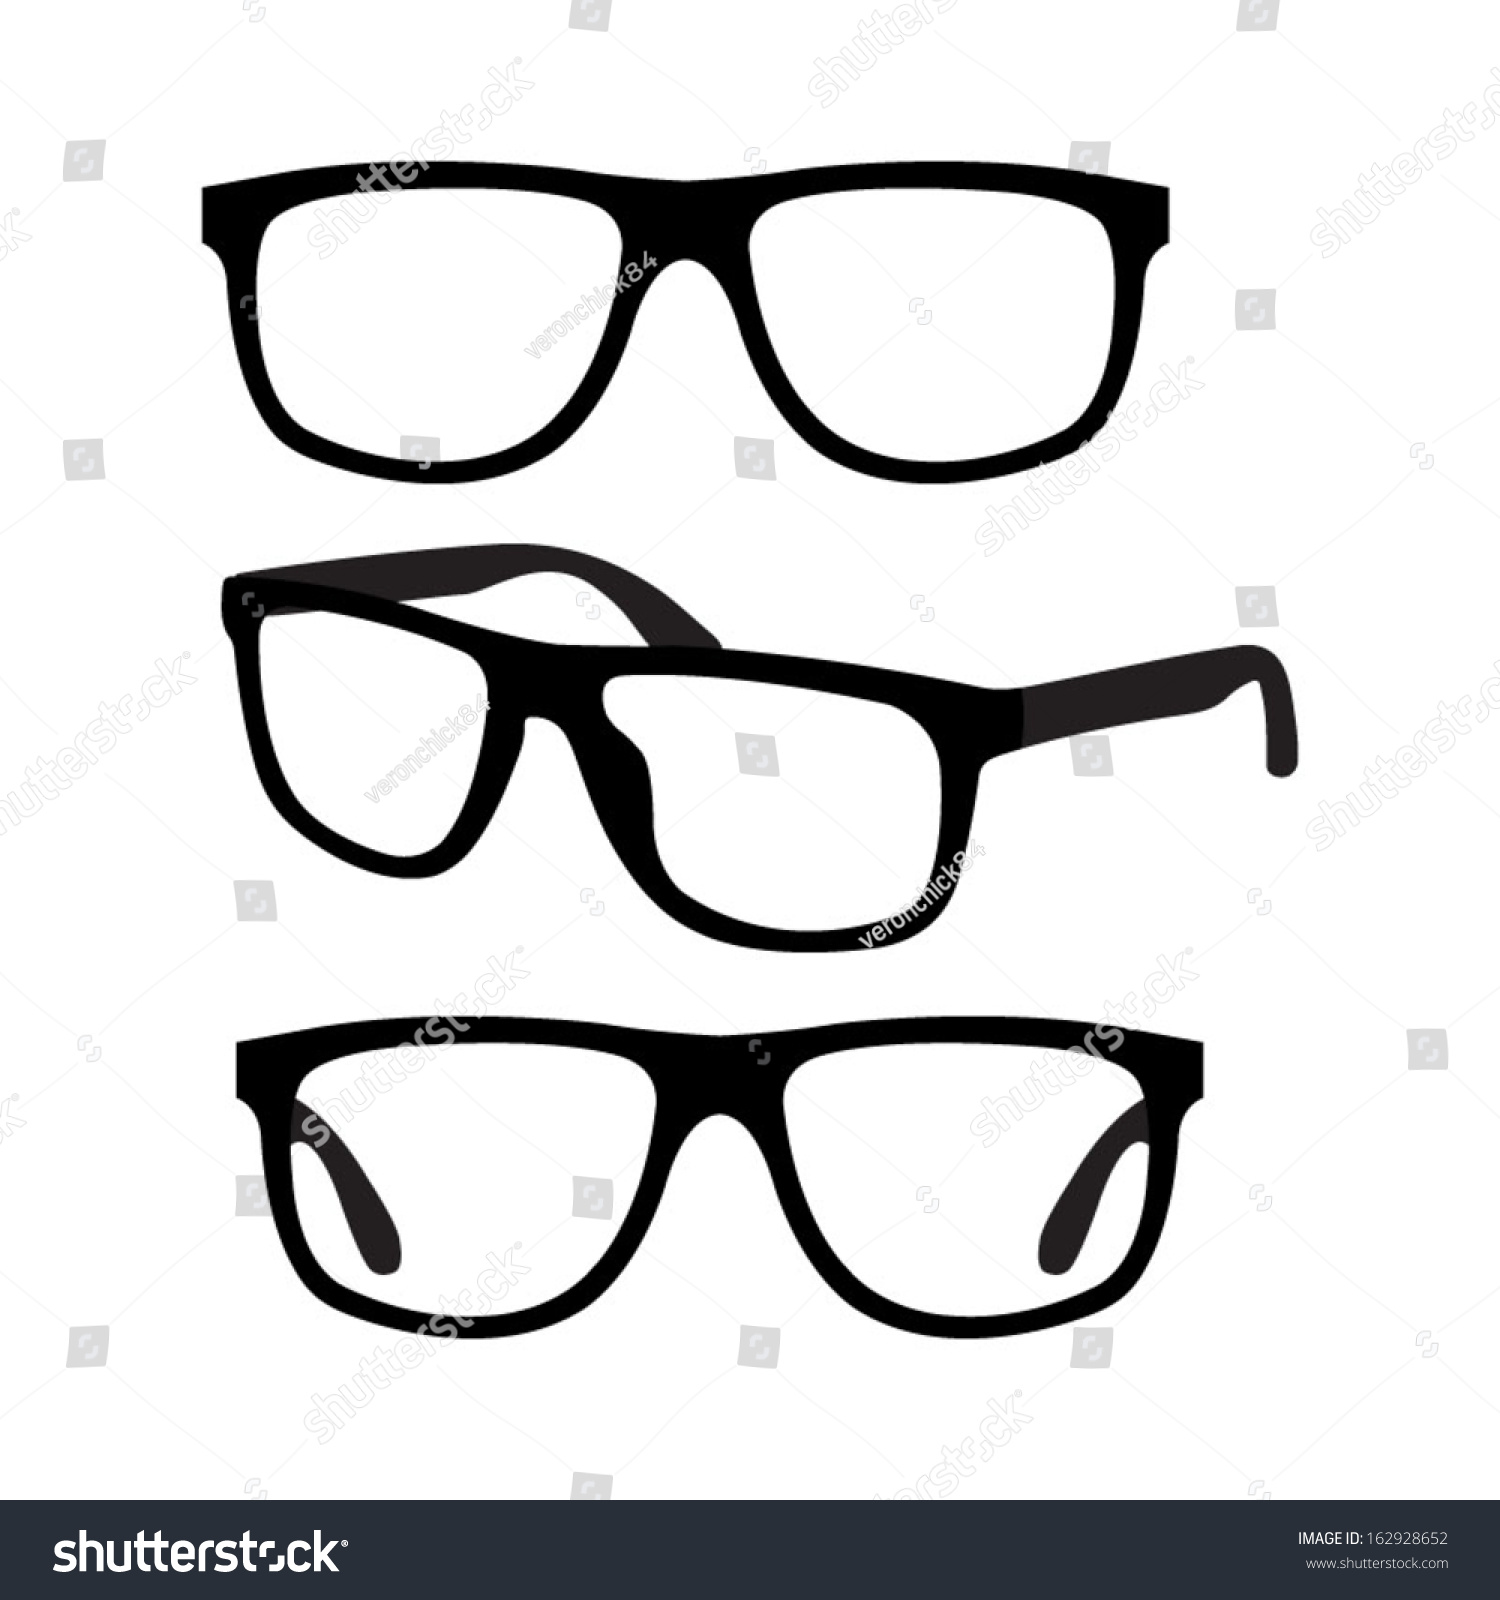 Eyeglass Frame Vector : Glasses Vector Set - 162928652 : Shutterstock